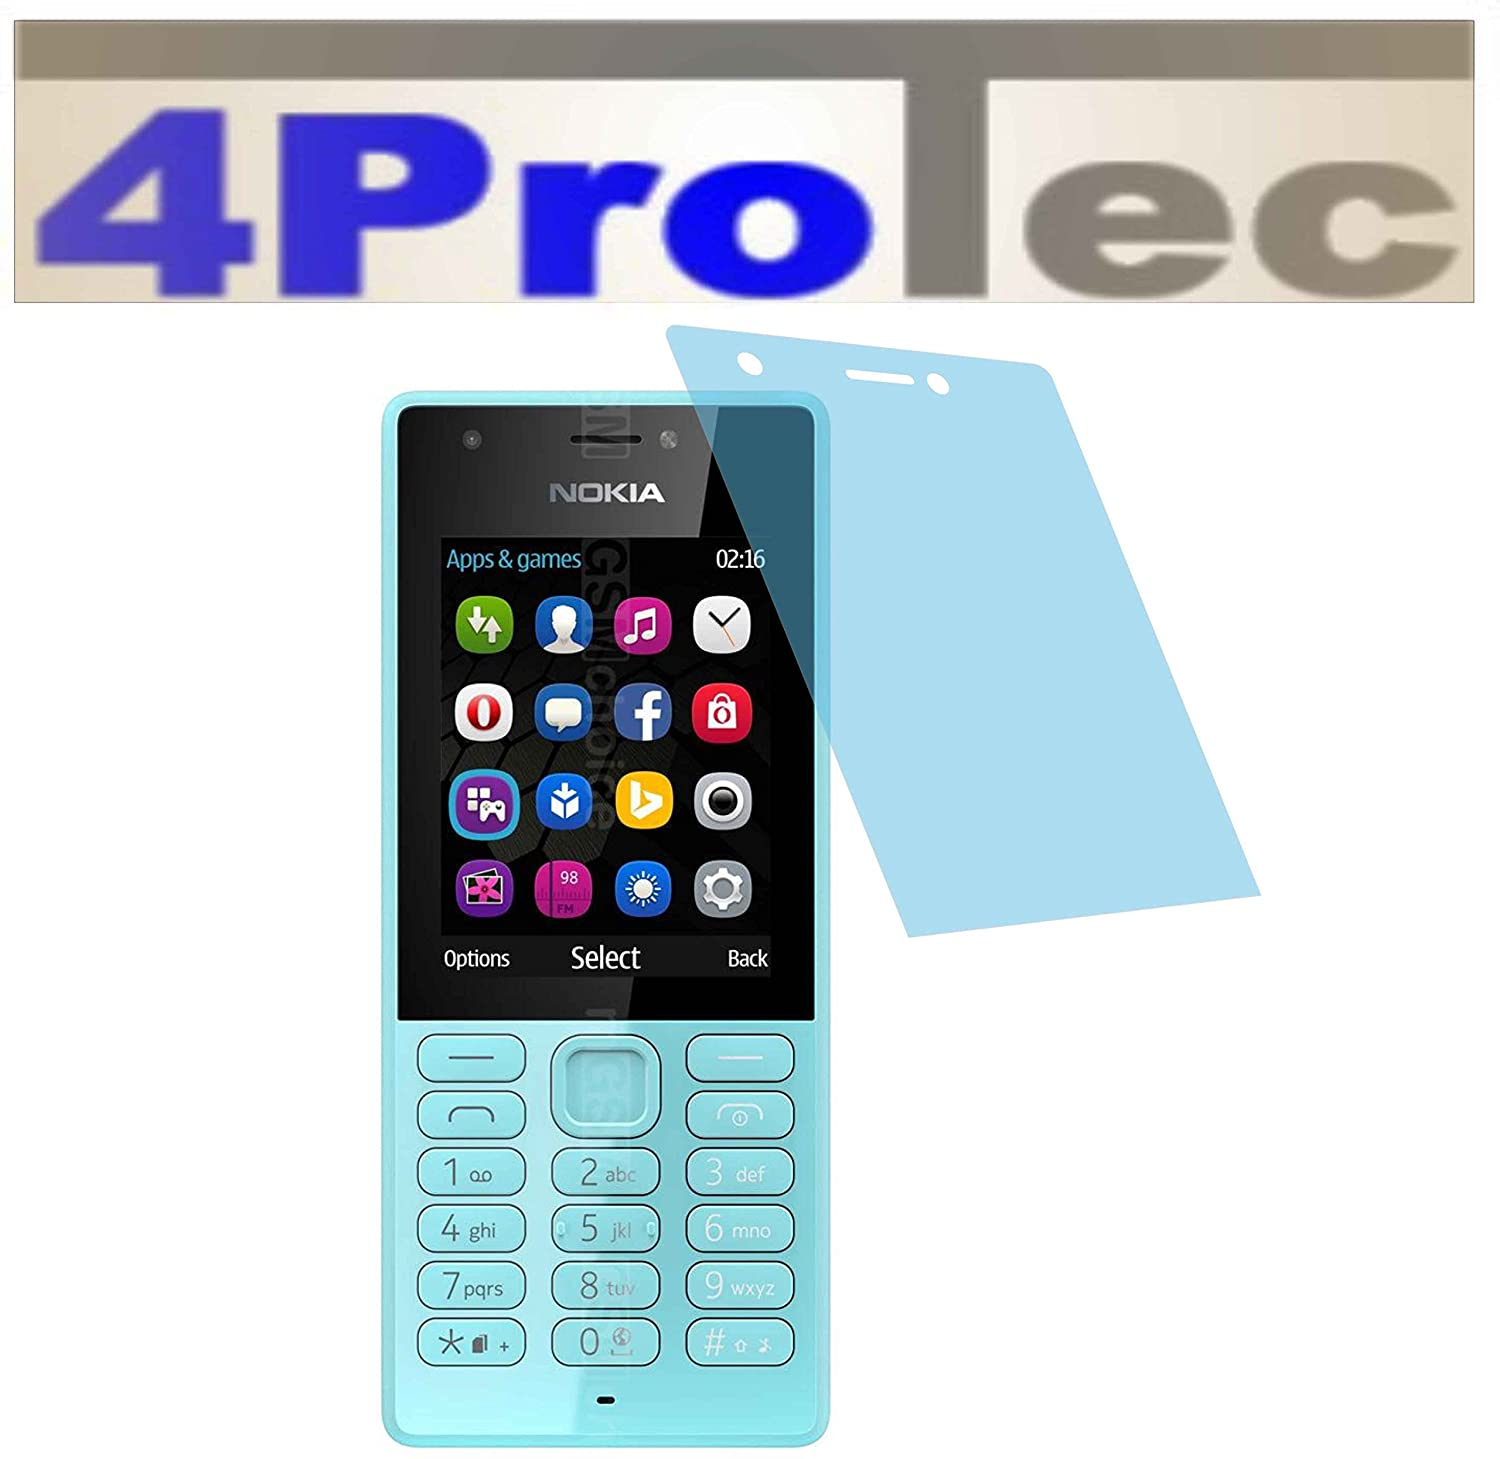 2 Piece Hardened Anti-Reflective Screen Protector for